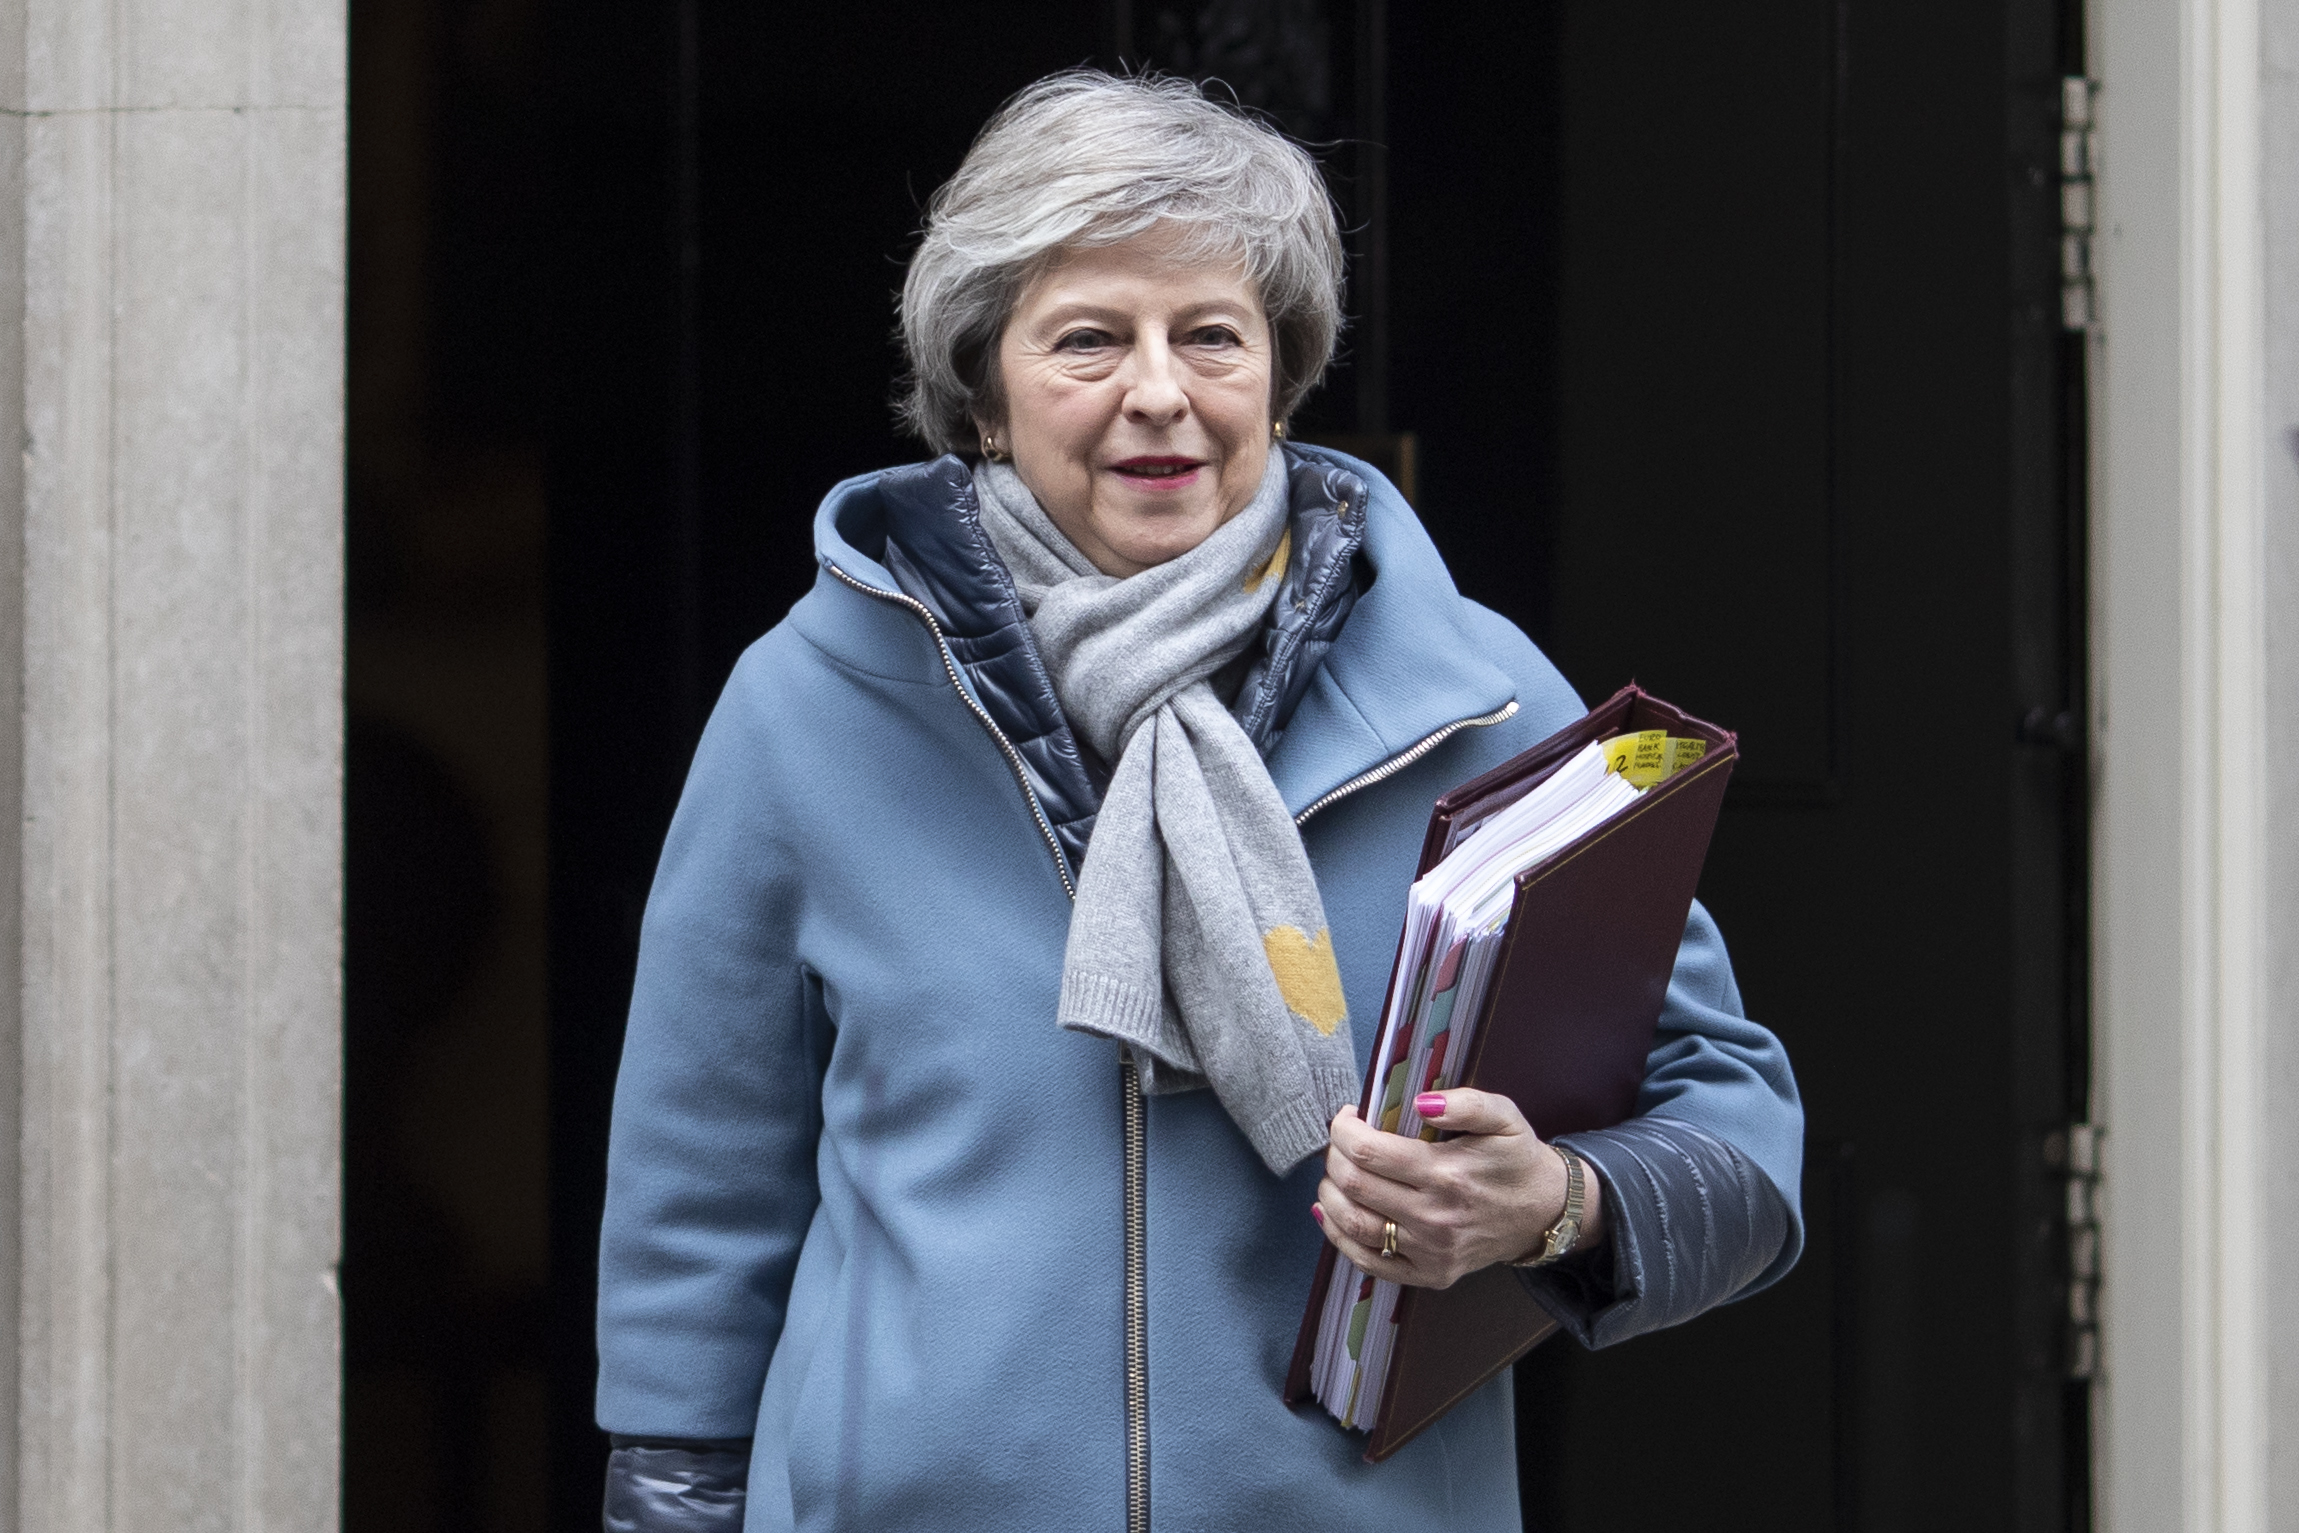 British Prime Minister Theresa May leaves 10 Downing Street to attend the weekly Prime Ministers Questions on January 9, 2019 in London, England.